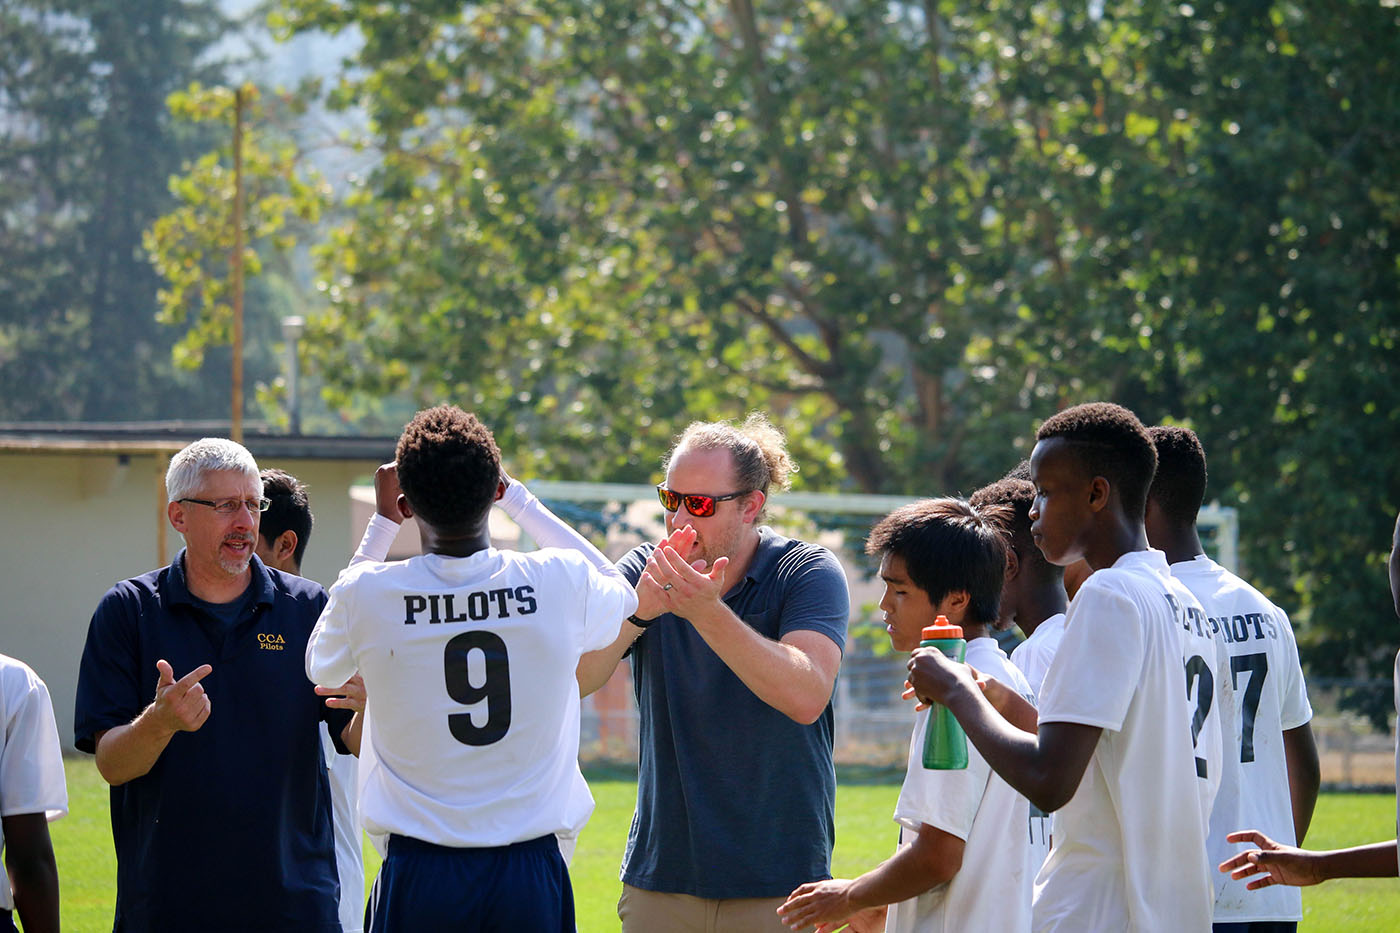 Athletic Director Lance Nutter, and Boys Soccer coach Ian Garrett, at Top Christian Academy, CCA in Canyonville Oregon